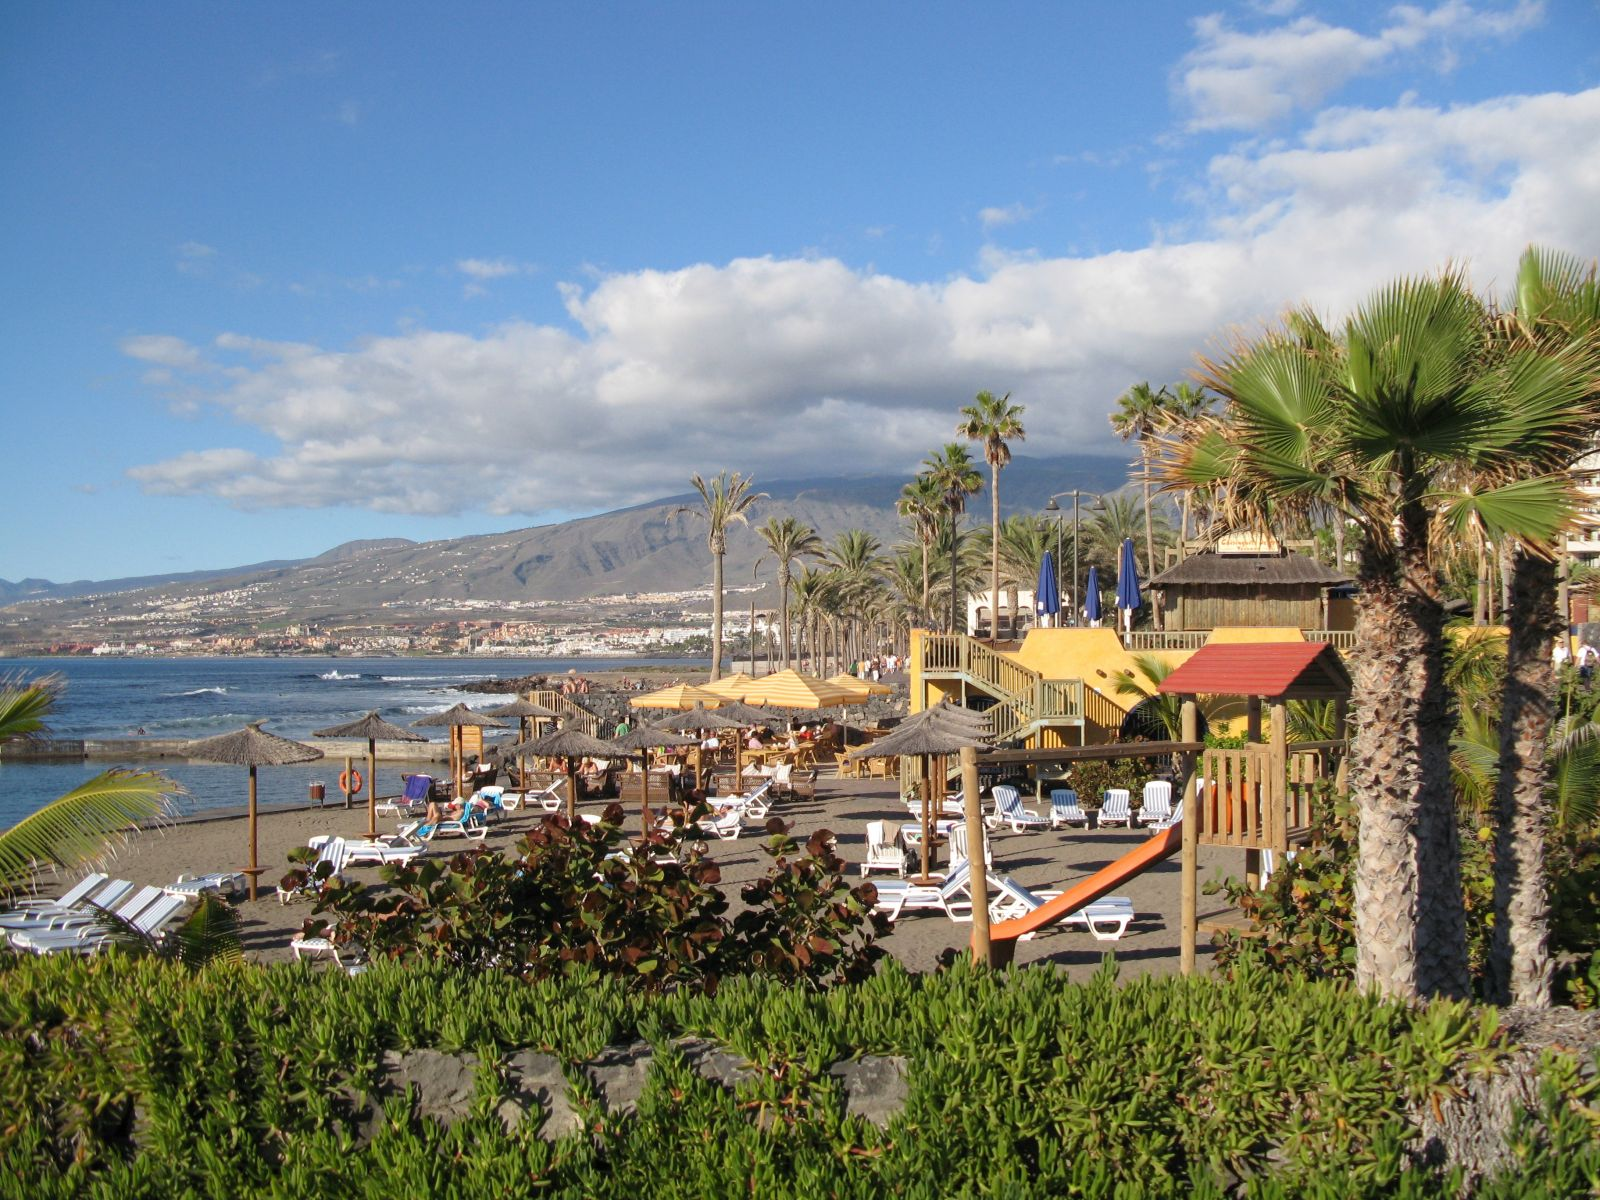 playa de las americas, top 10 accommodaties, tenerife, spanje